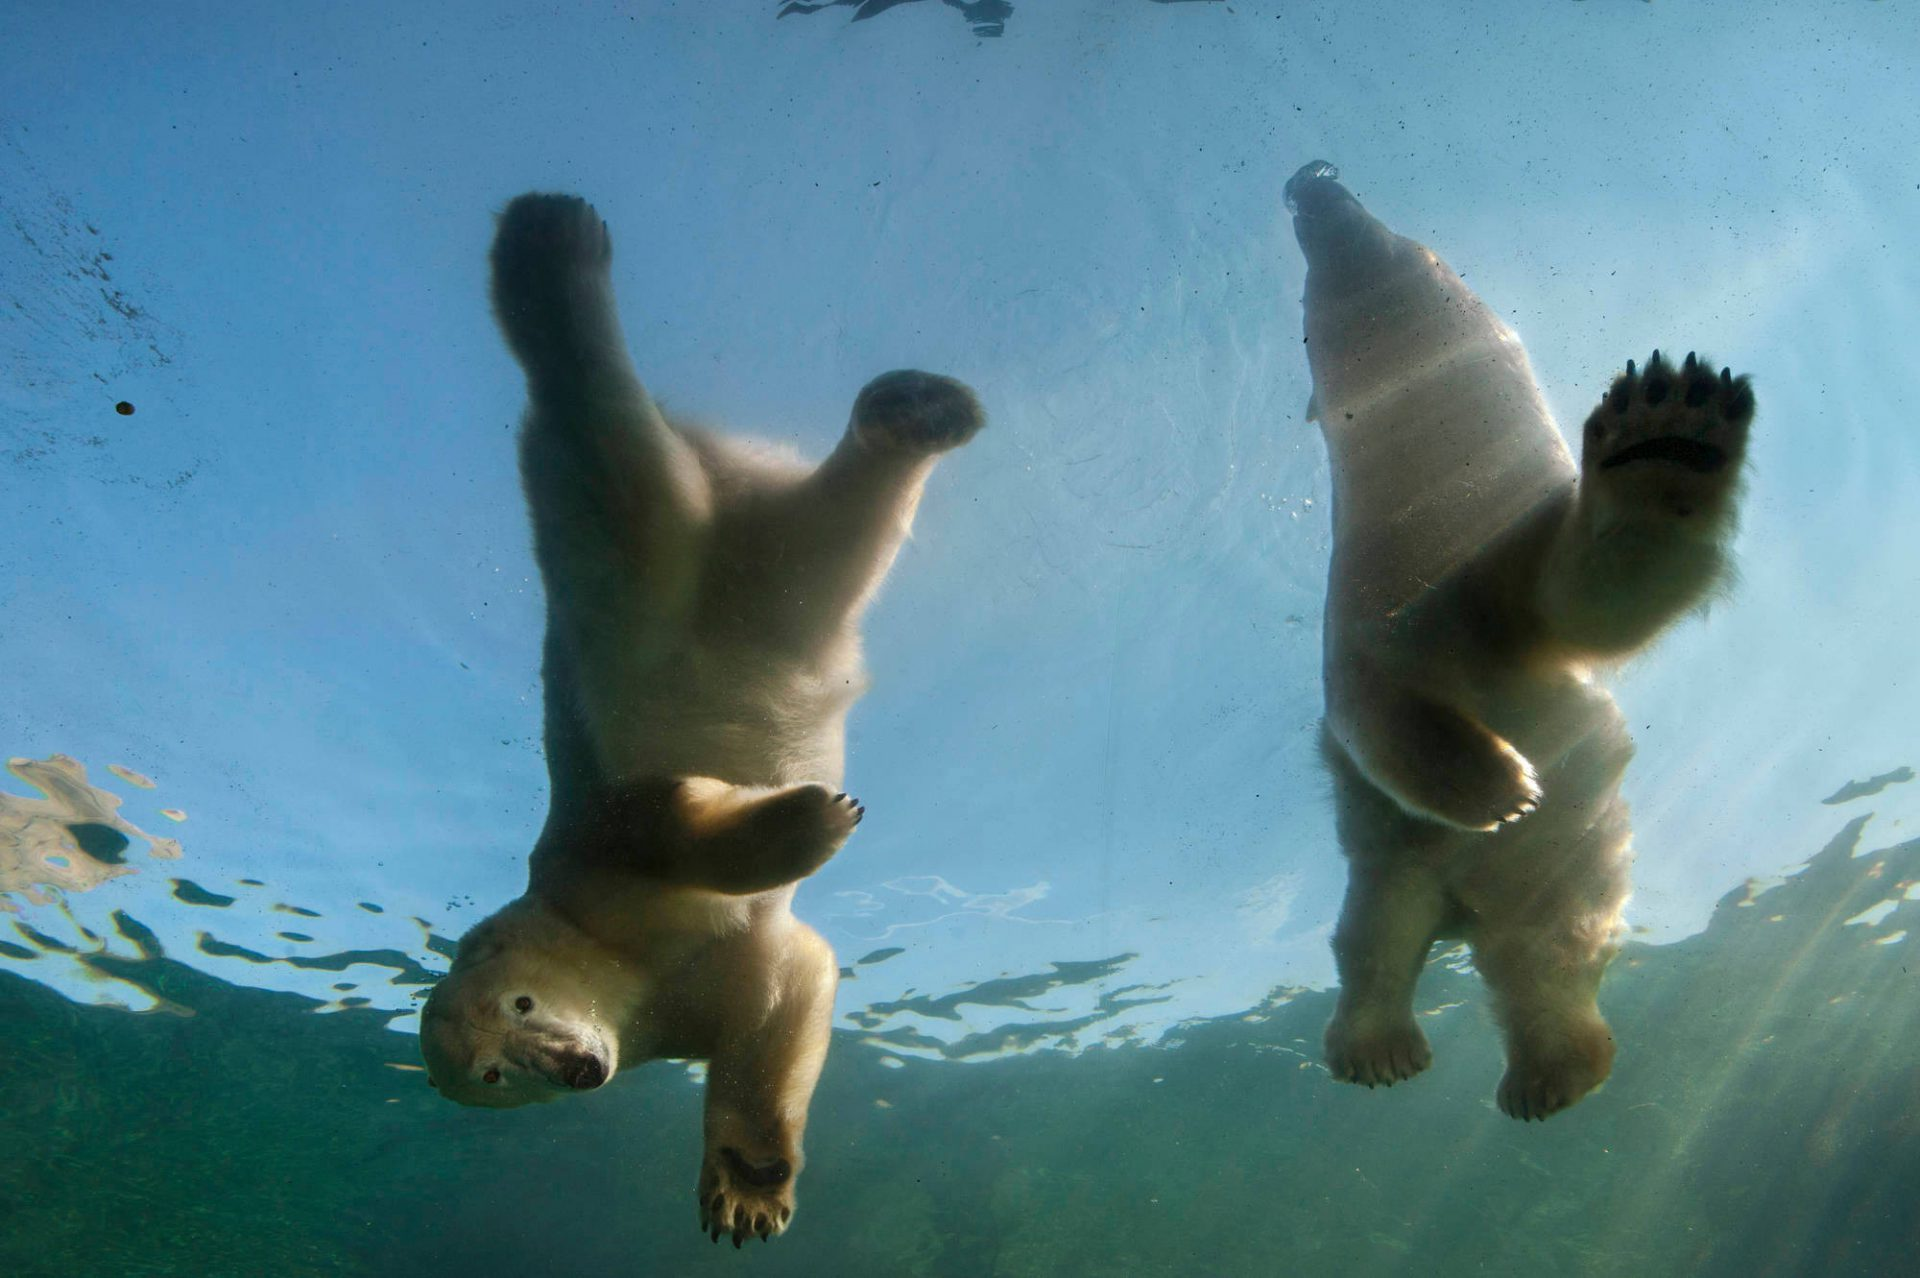 Vulnerable (IUCN) and federally threatened polar bears (Ursus maritimus) delight the crowd through 5-inch-thick acrylic at the Columbus Zoo. The underwater display is filled with live rainbow trout so the bears can fish.